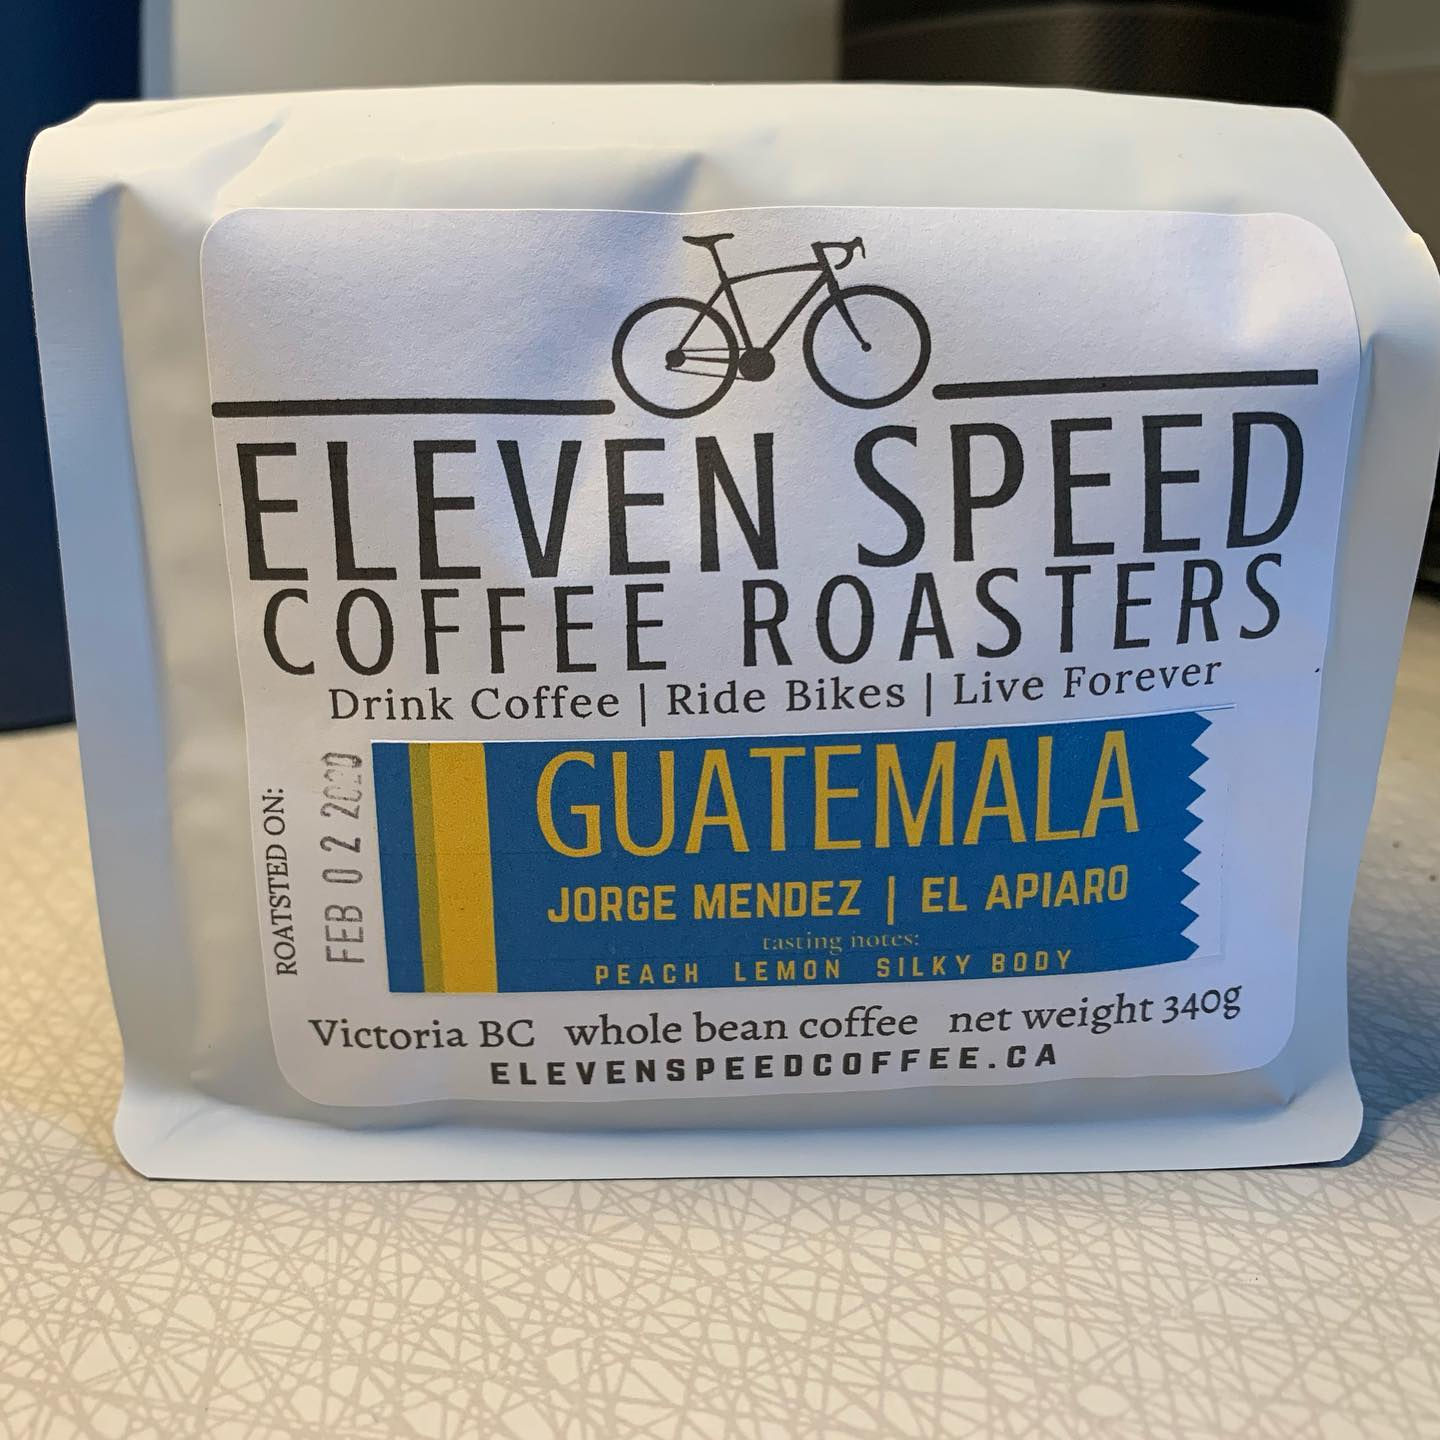 From one internet rando to another, if you live in Victoria BC and drink coffee, then head over to @elevenspeedcoffee and order a bag of this deliciousness. #yyj #esquimalt #coffee #yyjcoffee #shoplocal